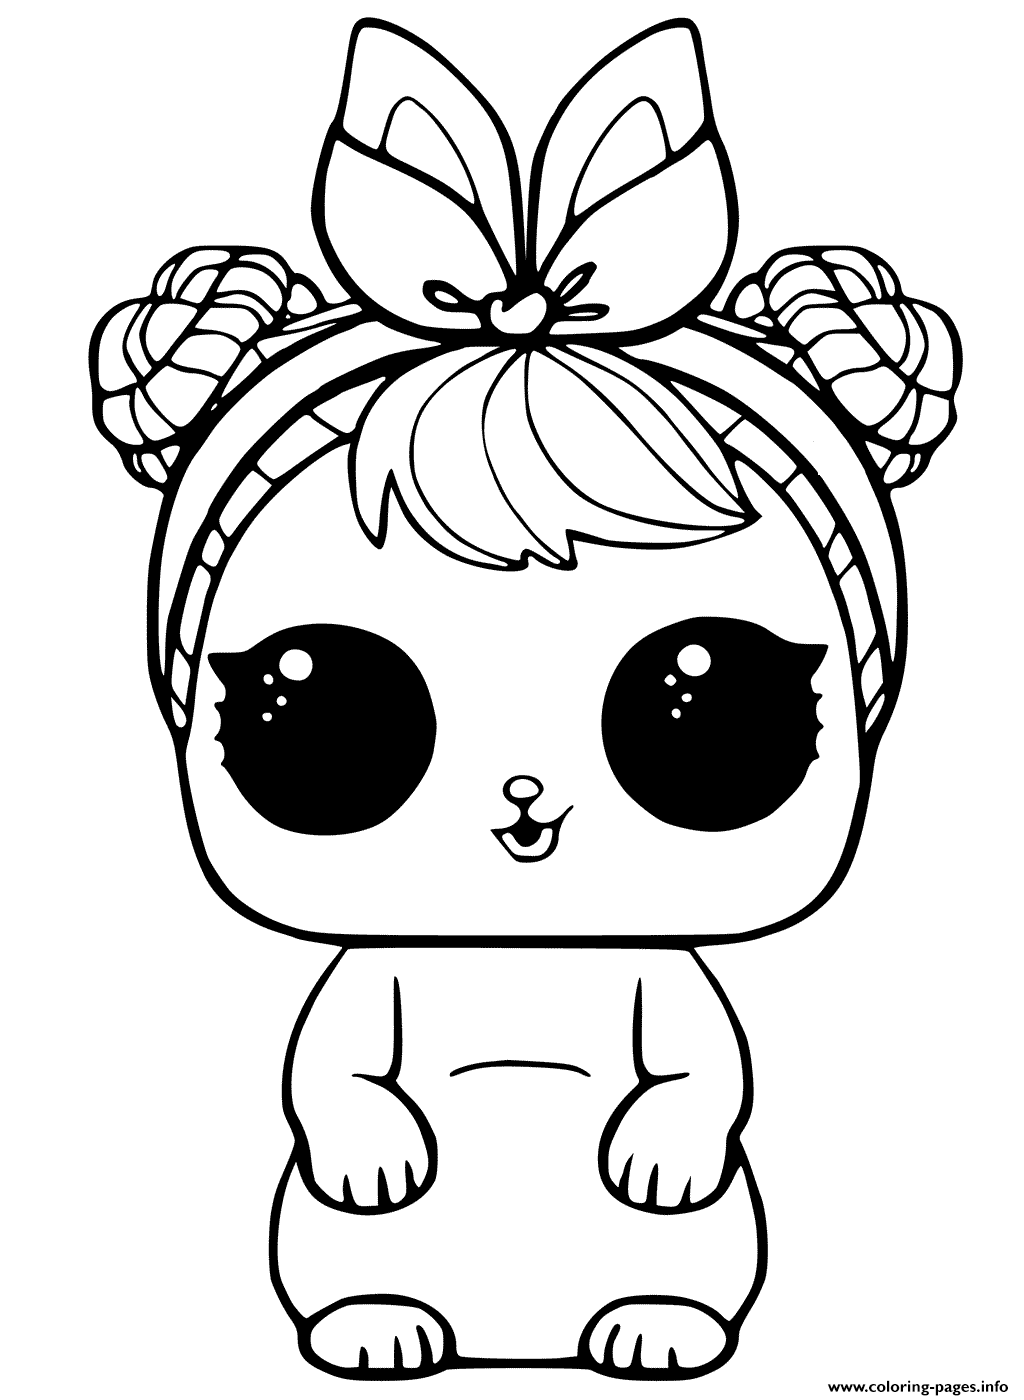 Lol Pets Coloring Pages : coloring, pages, Print, Coloring, Pages, Cartoon, Pages,